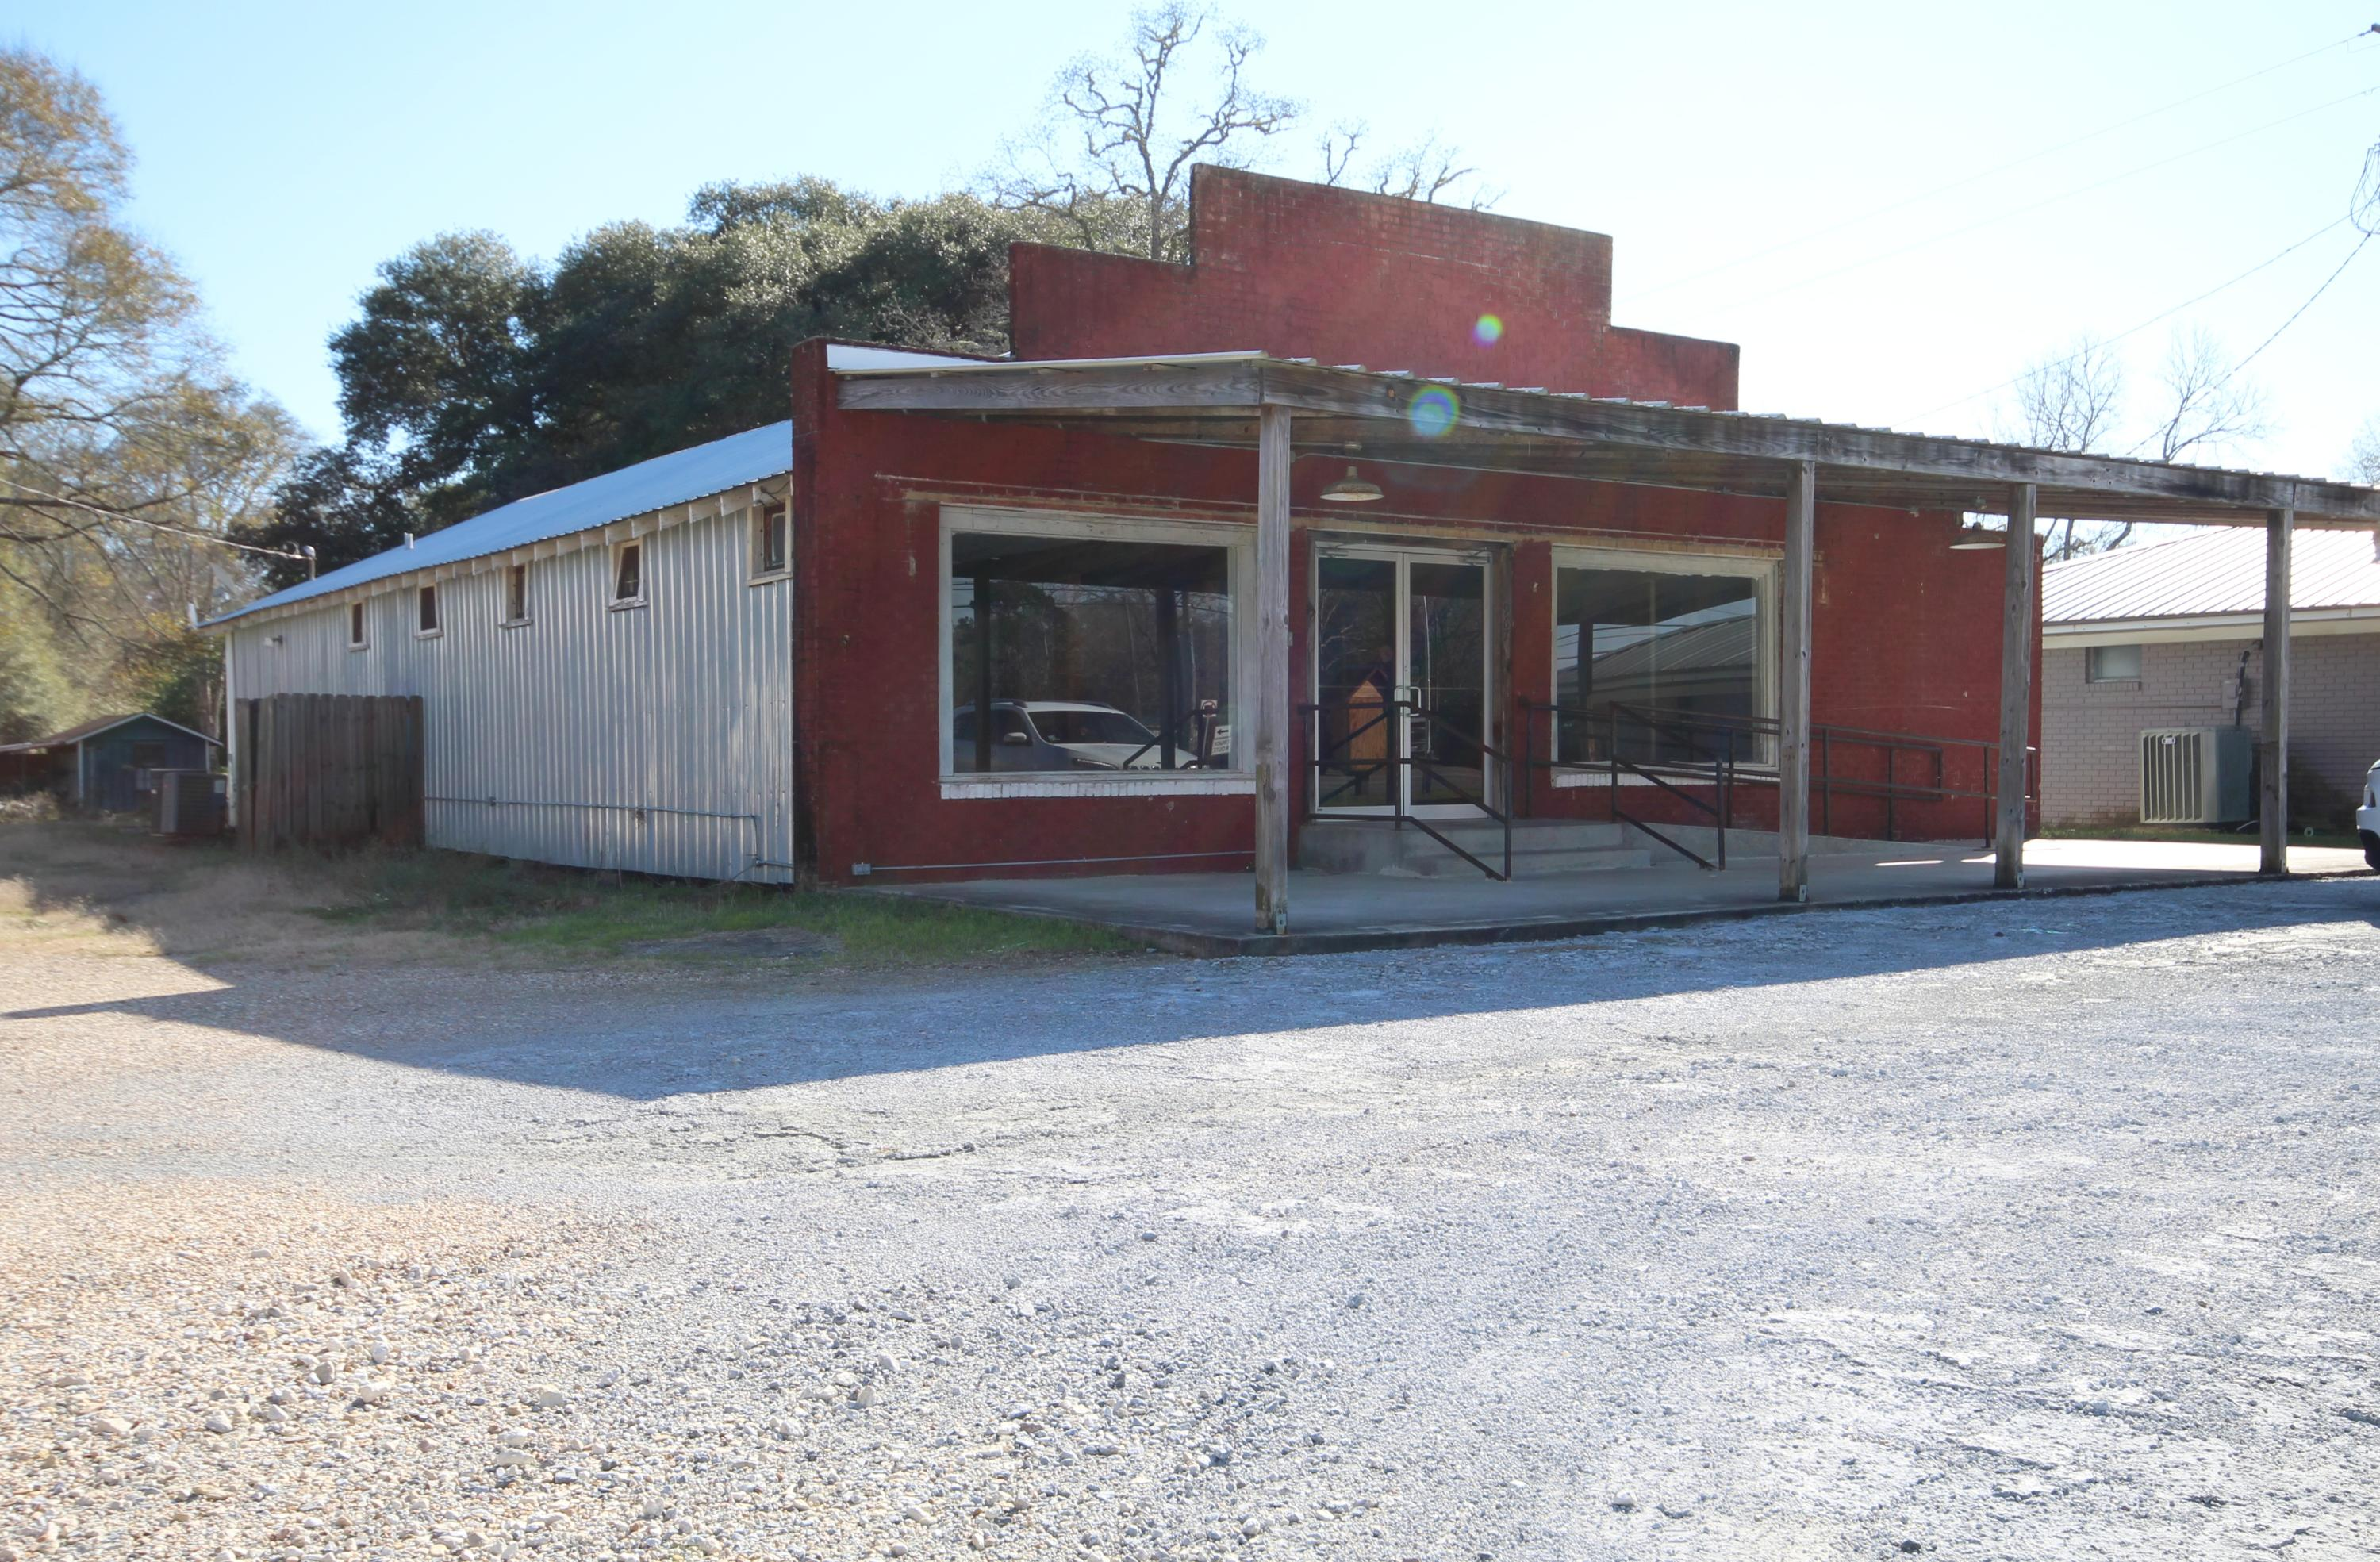 Merryville commercial property for sale, 967 HWY 110, Merryville LA - $39,900